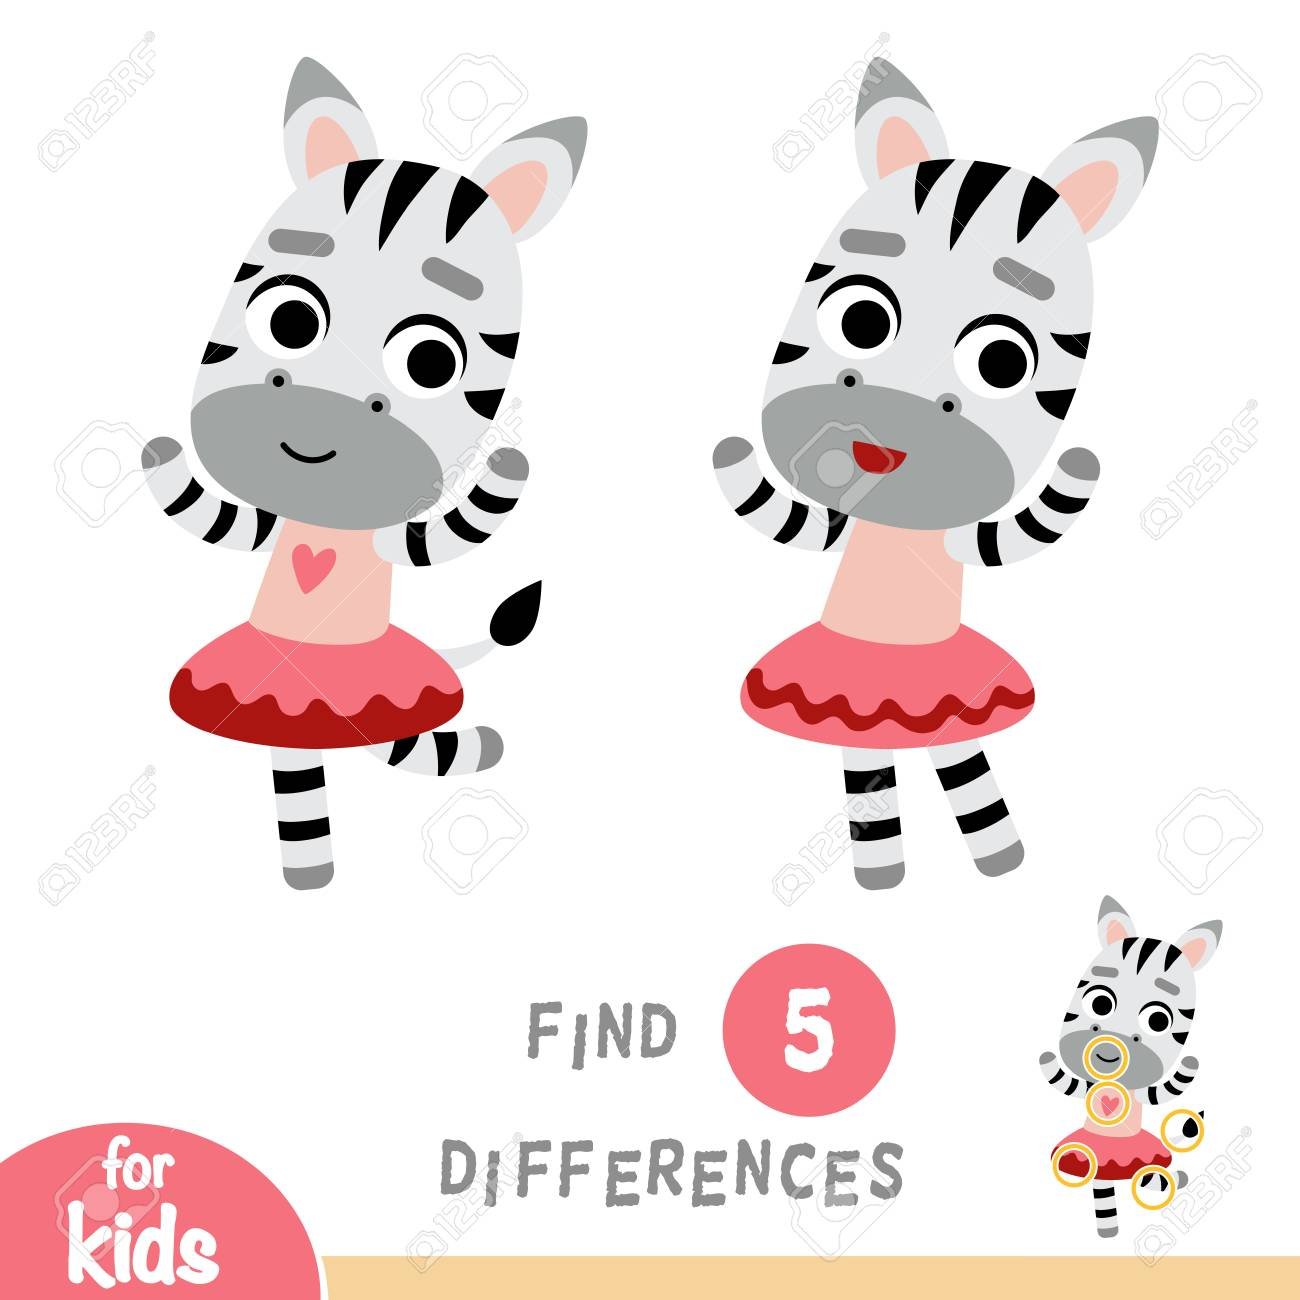 Find differences, education game for children, dancing Zebra - 126352868